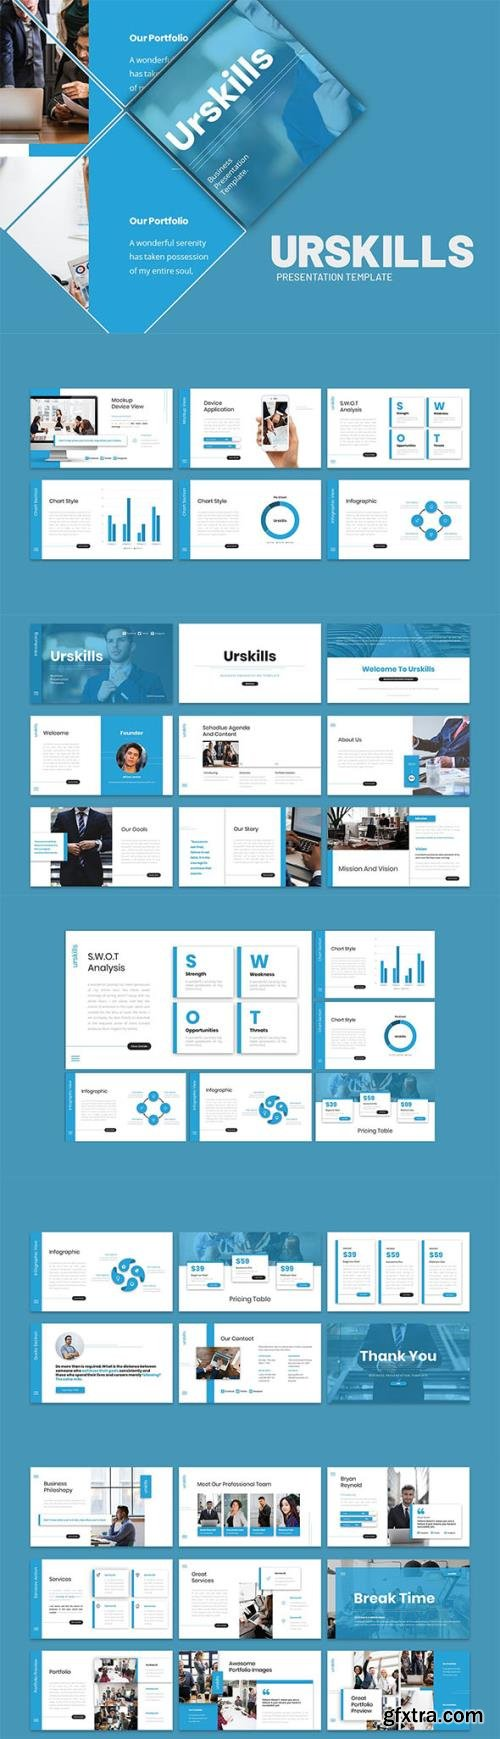 Urskills - Business Presentation Keynote Template